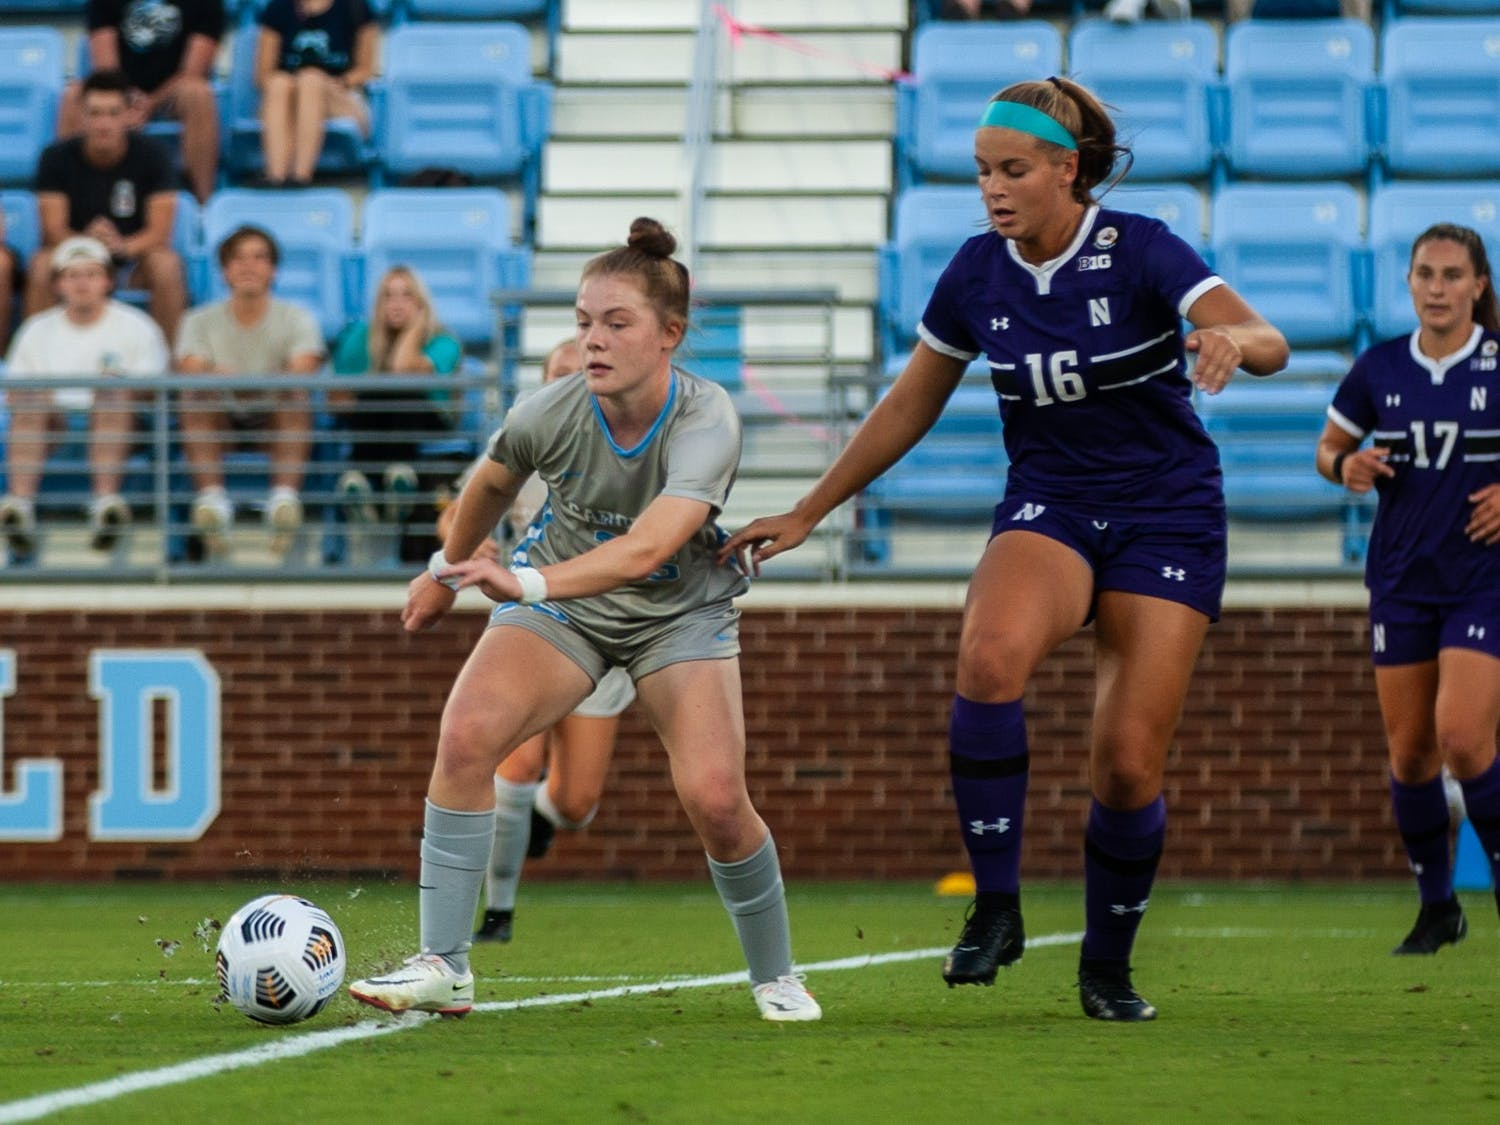 Freshman forward Emily Murphy (35) moves the ball past the defense at the home game against Northwestern on Sept 2. UNC won 2-0.